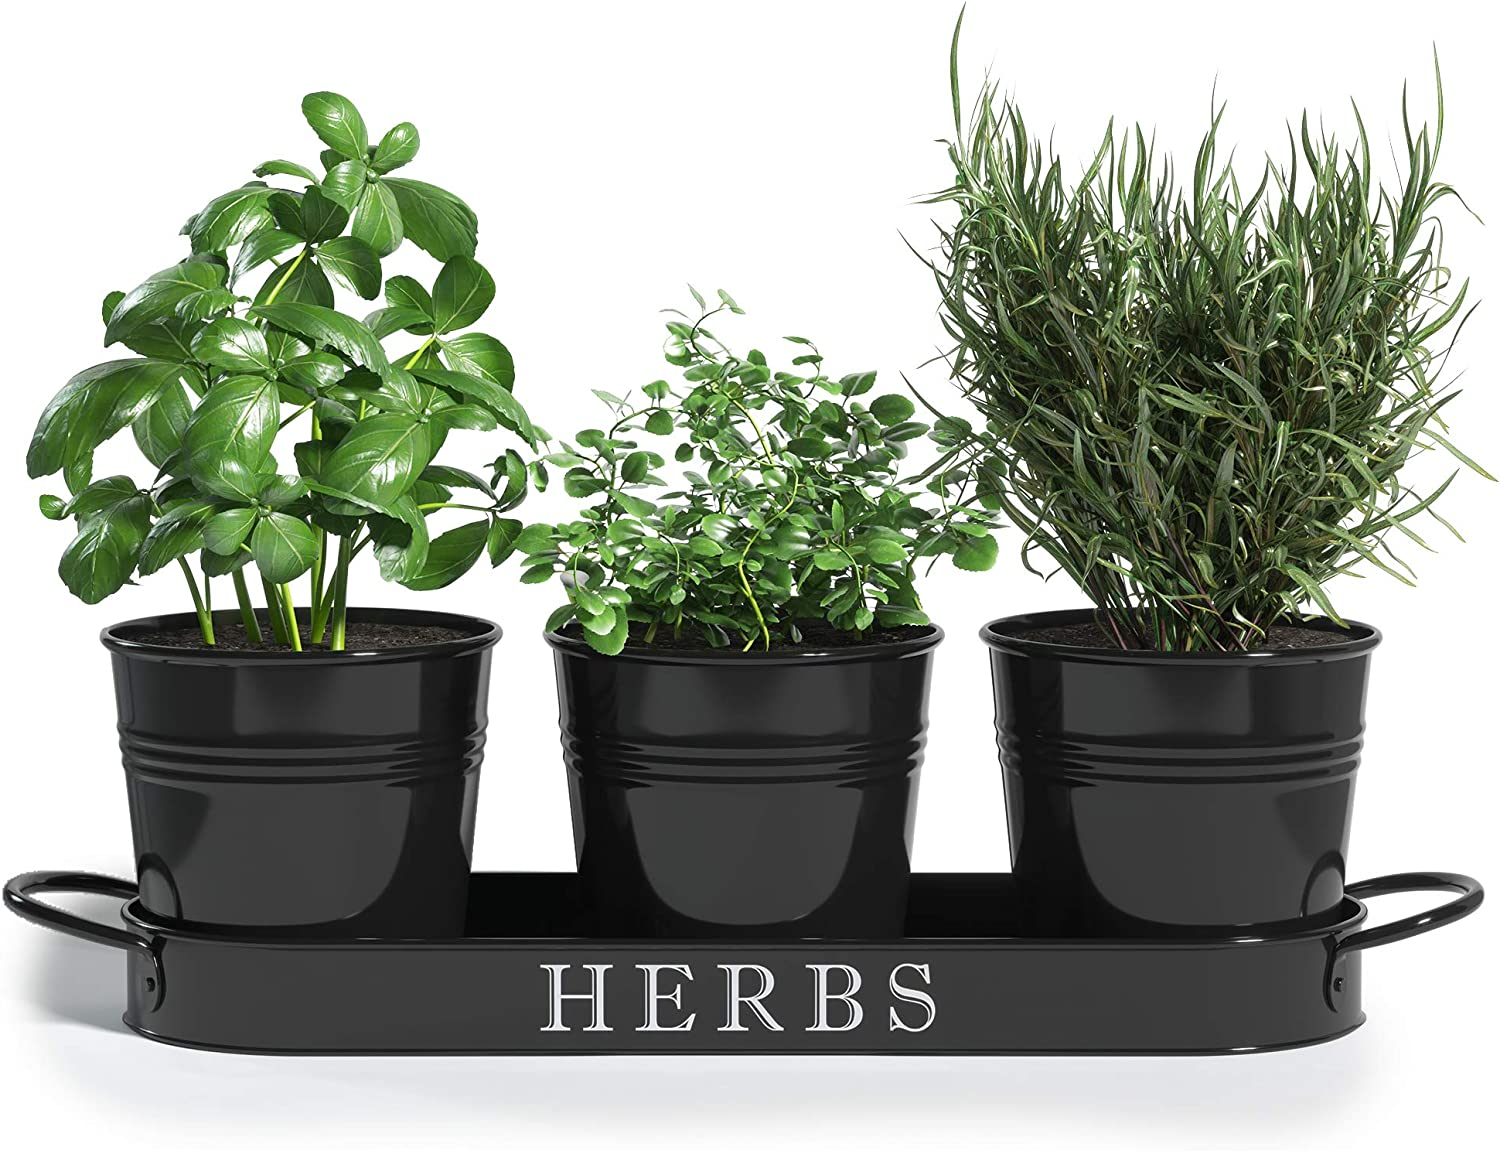 Herb Pot Planter Set with Tray